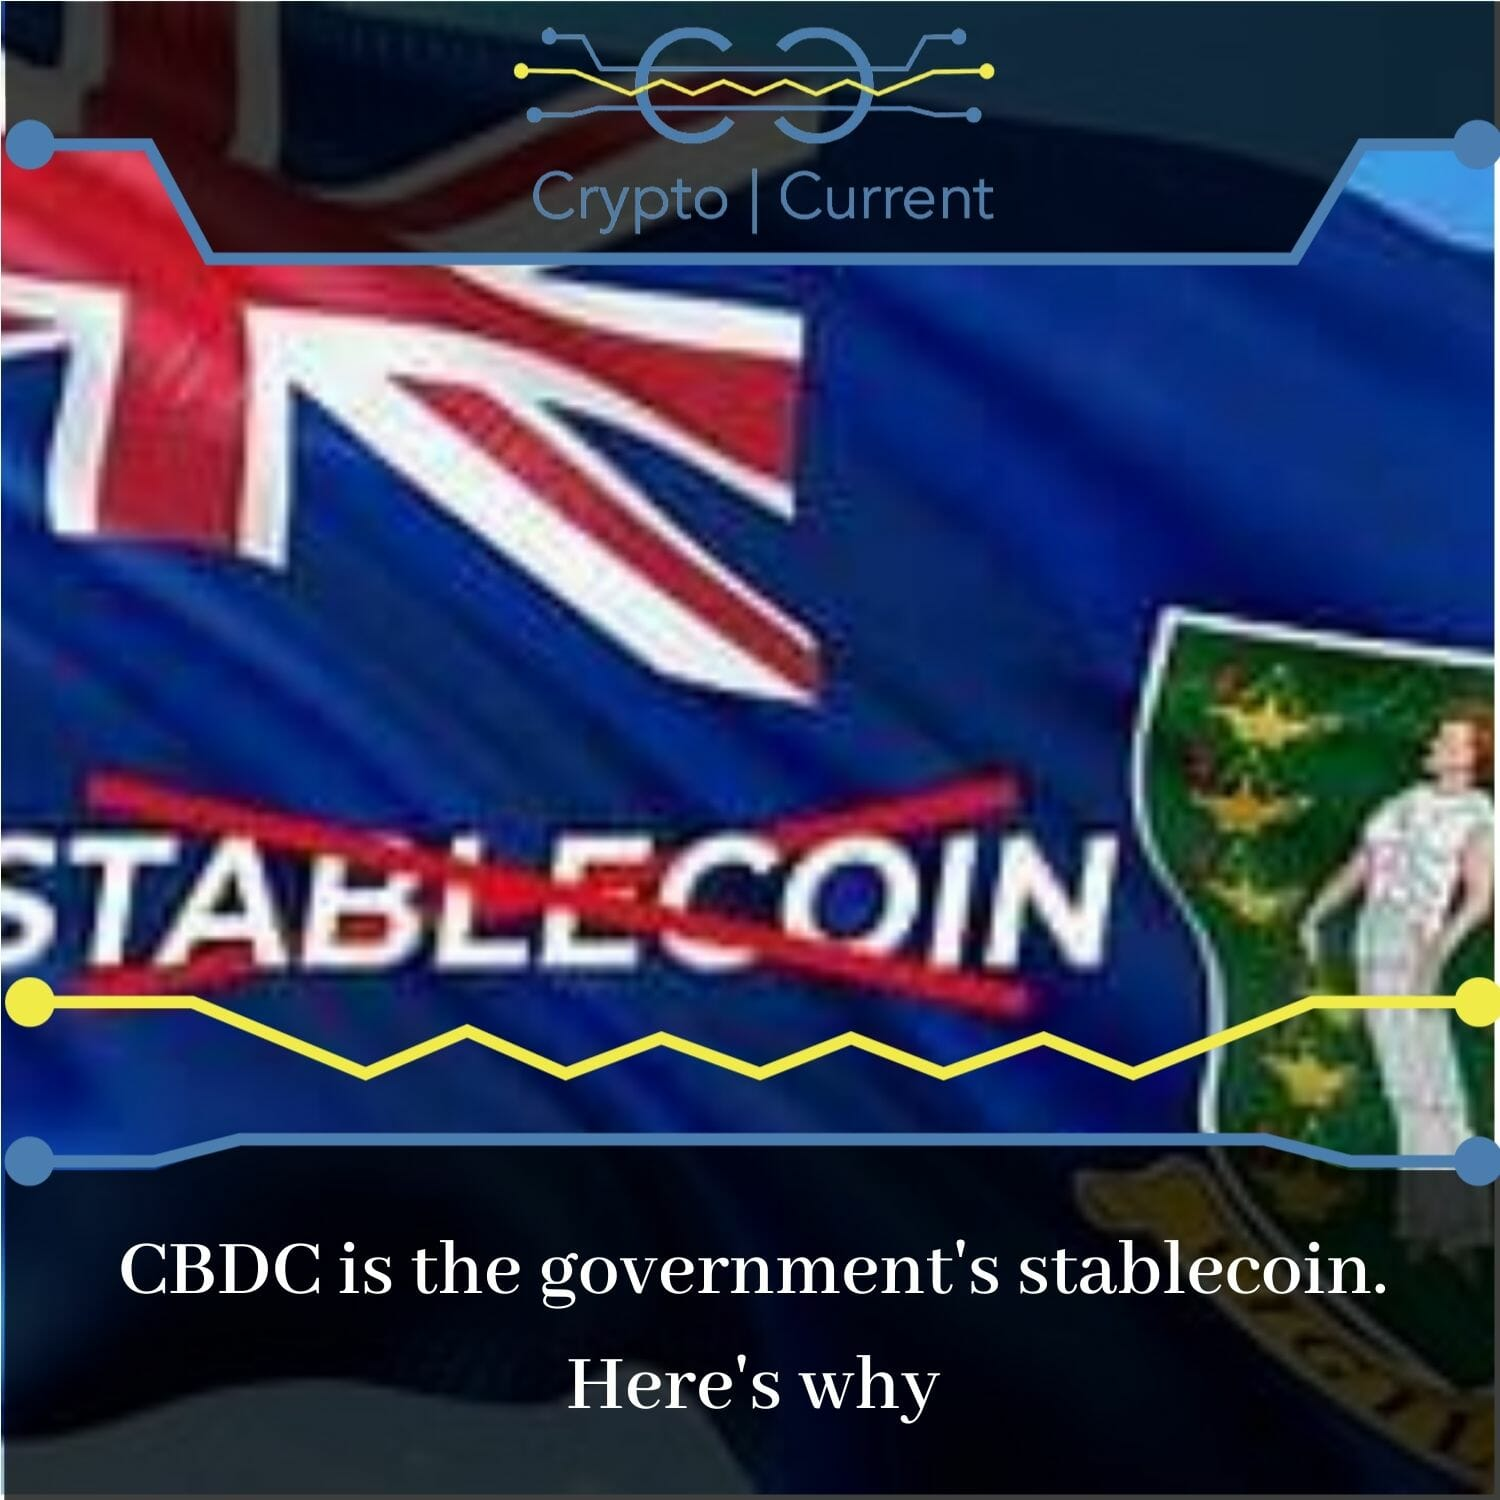 CBDC is the government's stablecoin. Here's why